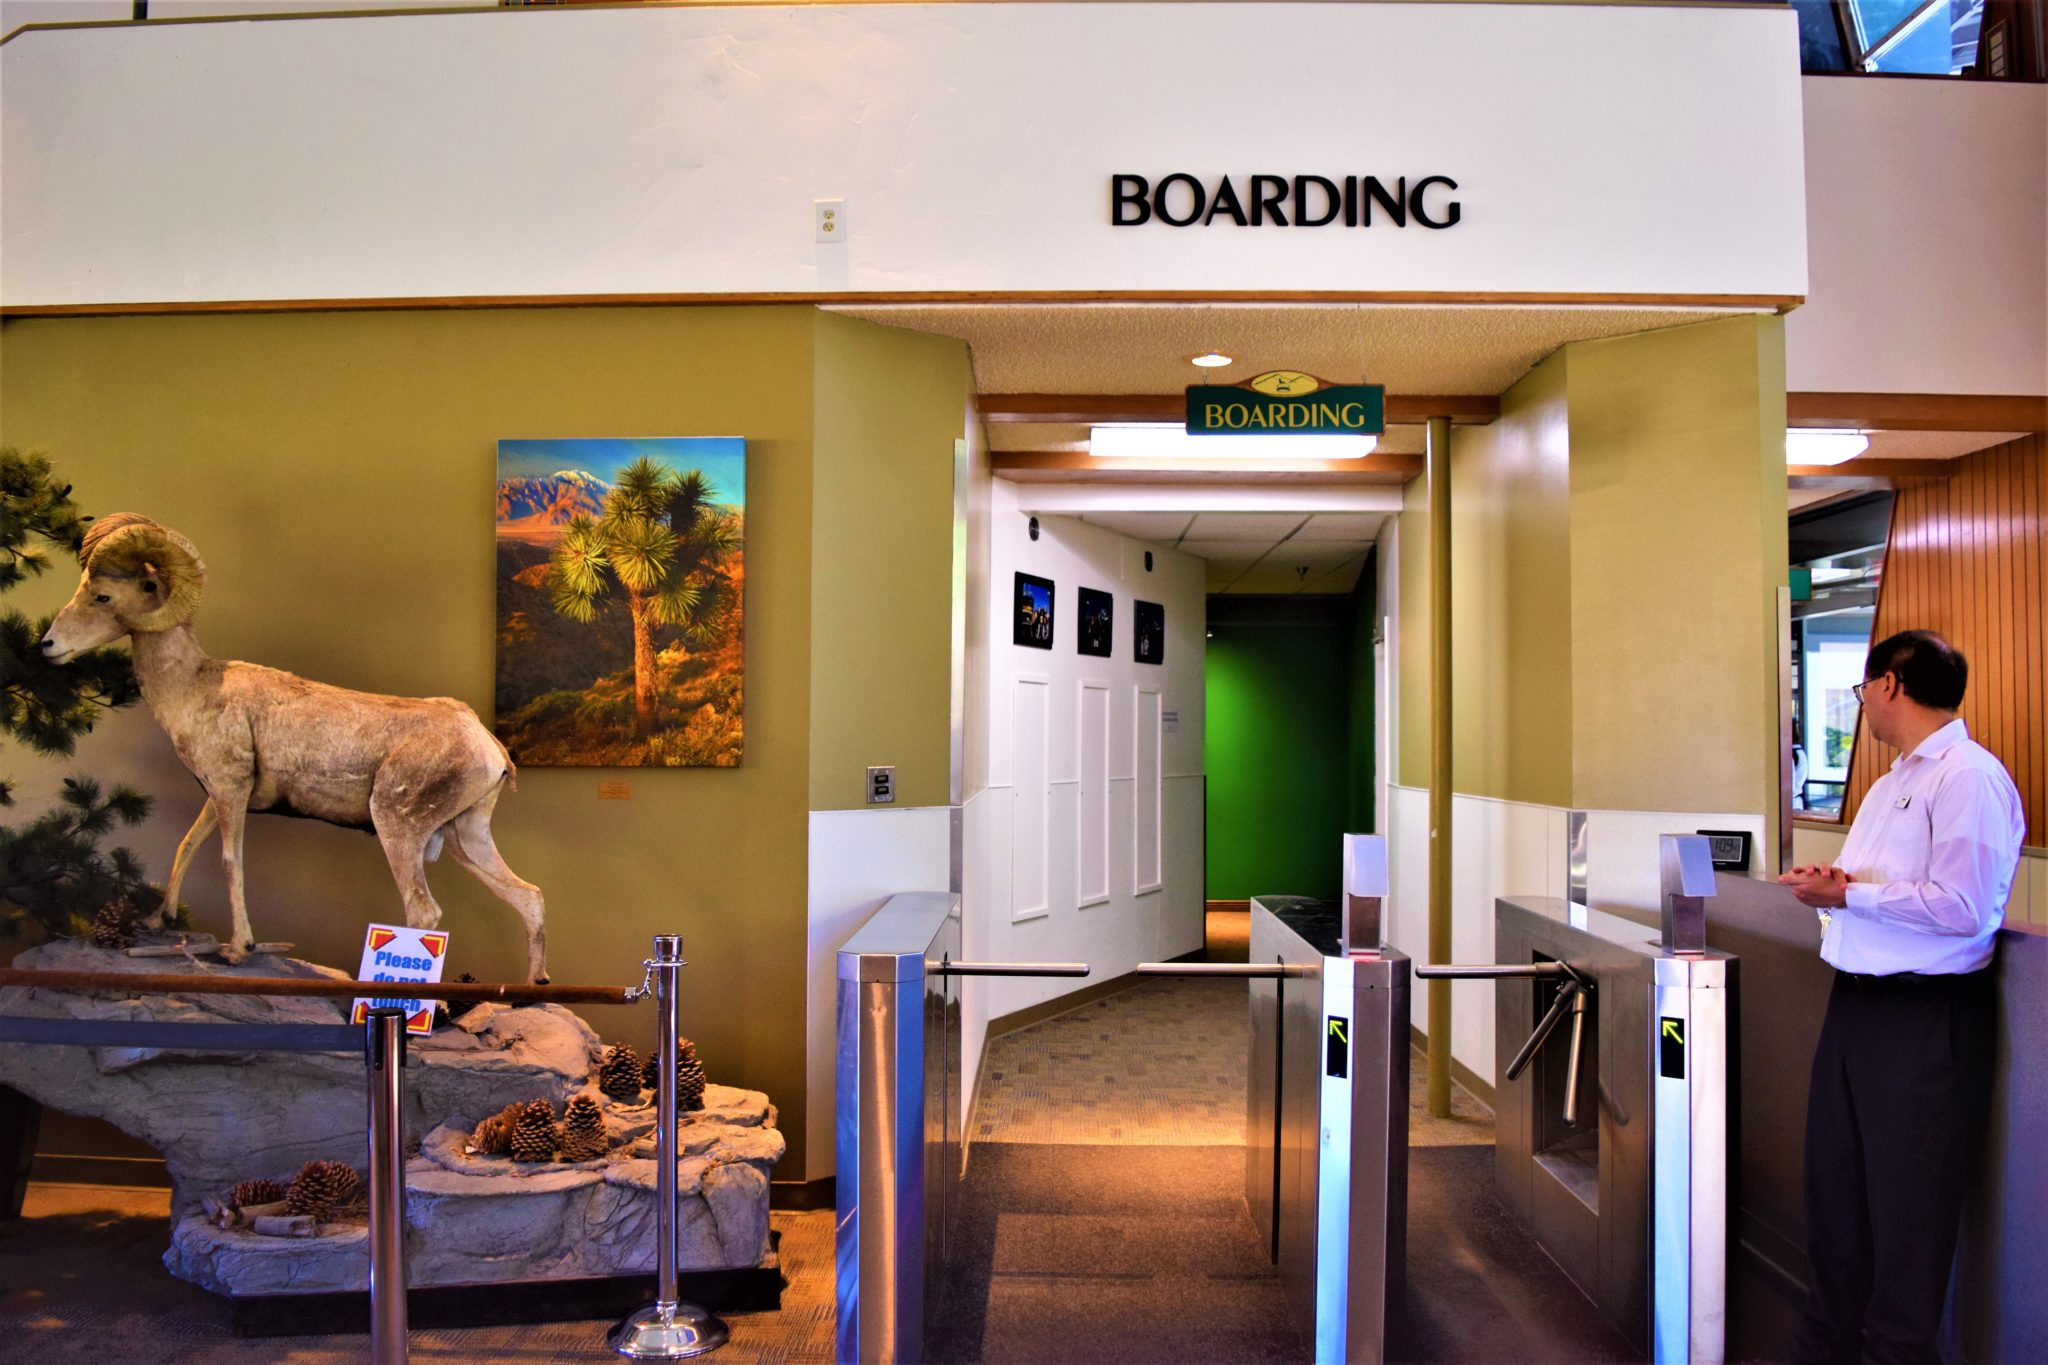 Boarding area, Palm Springs tramway, California. USA